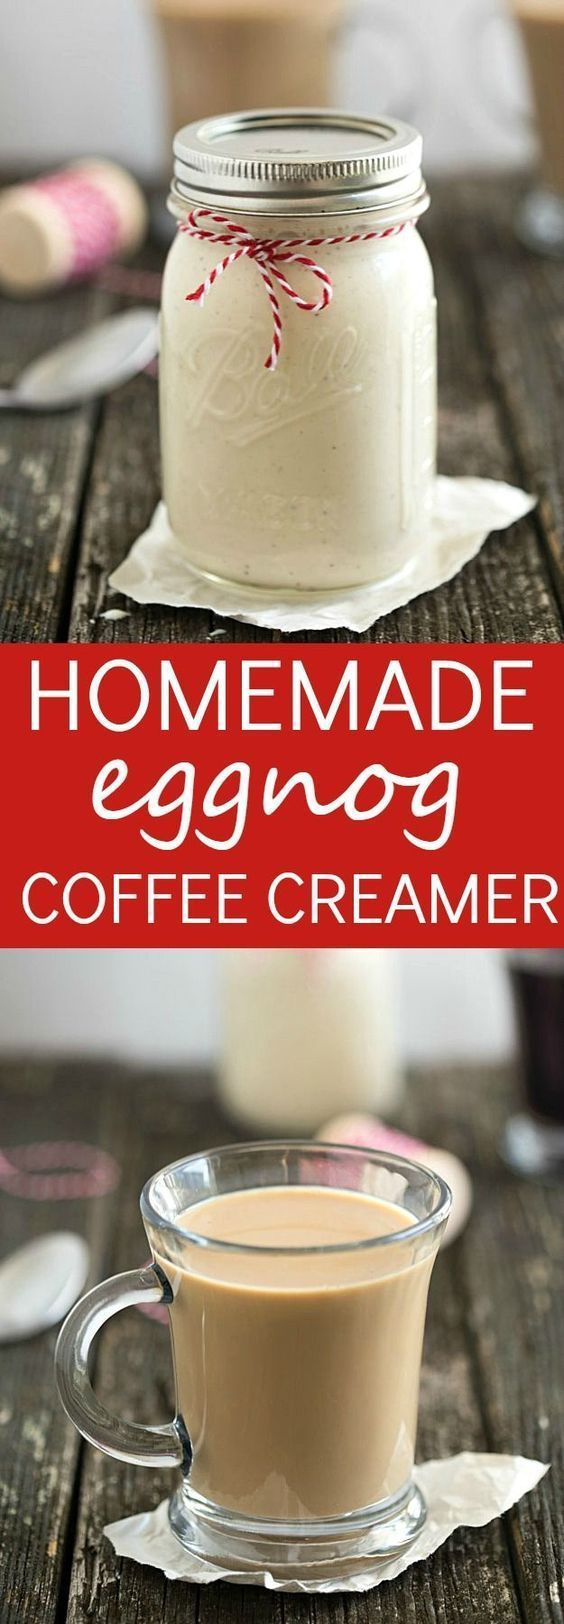 Homemade Eggnog Coffee Creamer - Gal on a Mission #eggnogcheesecake